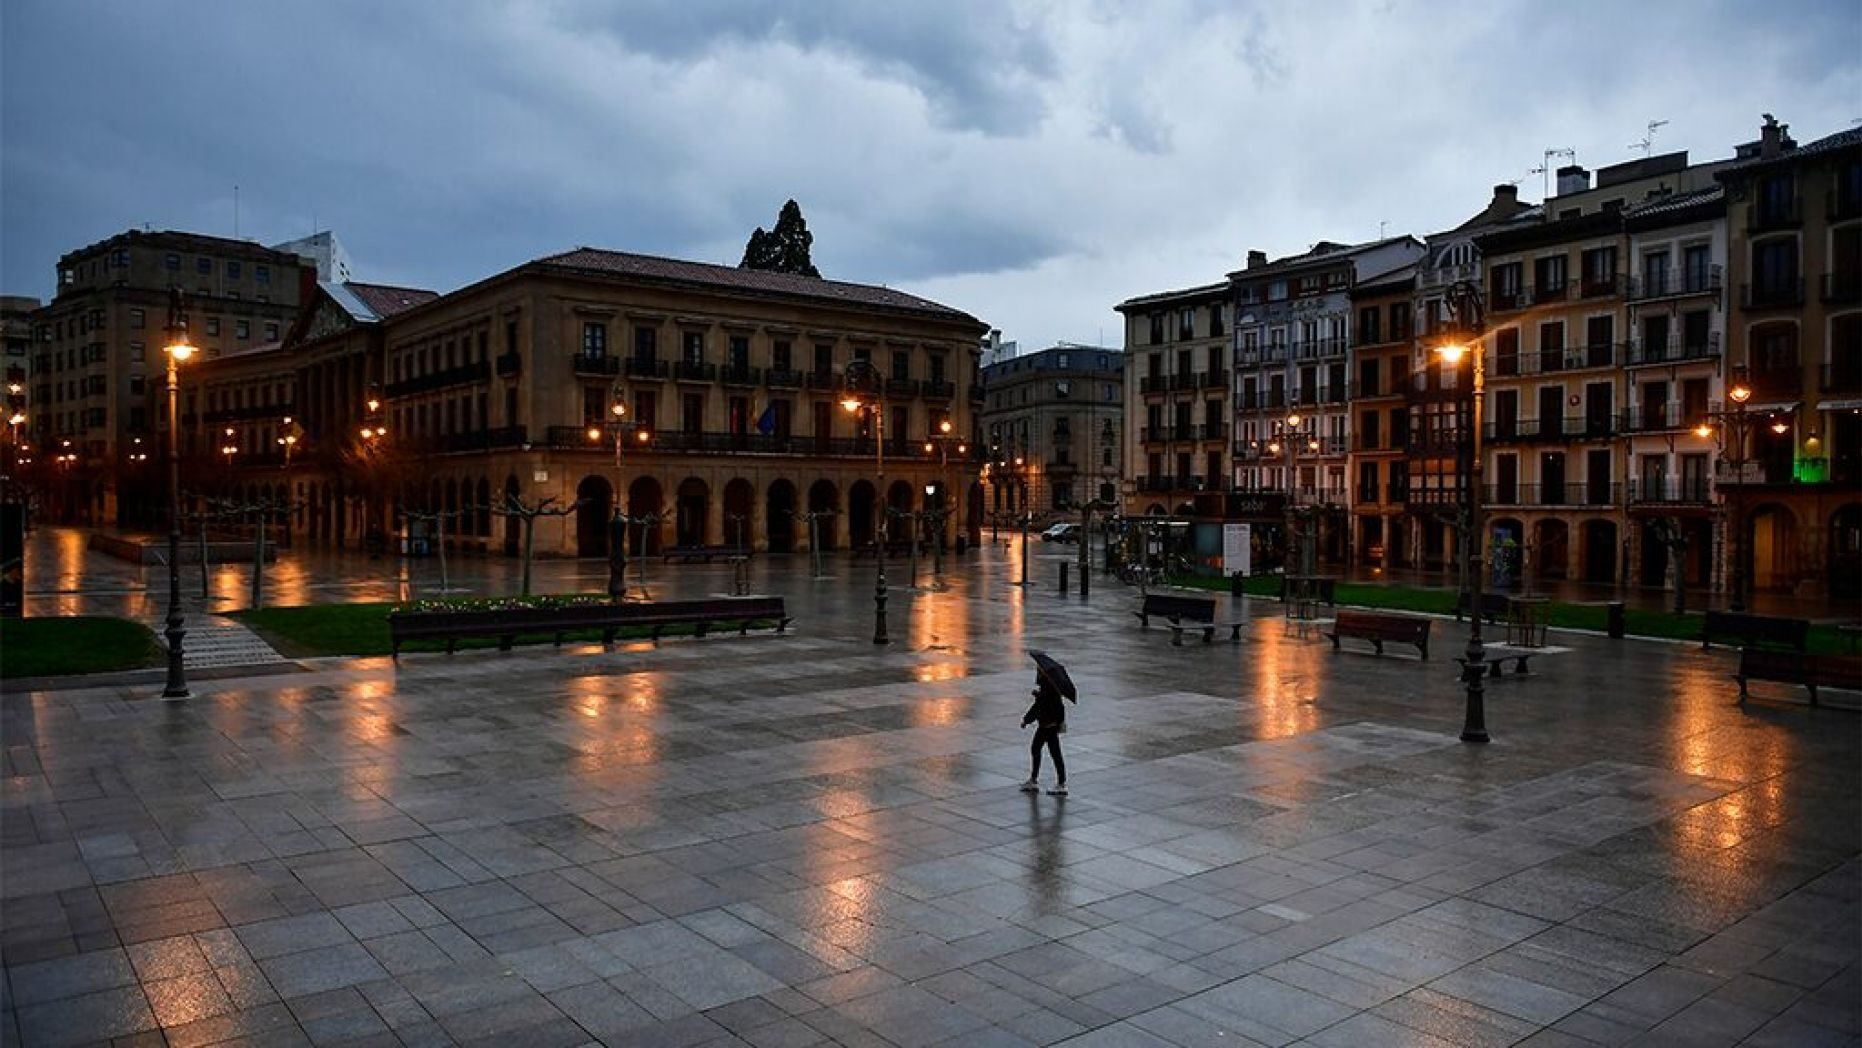 A person walks through an empty Plaza del Castillo square in the old city, in Pamplona, northern Spain, Sunday, March 15, 2020.